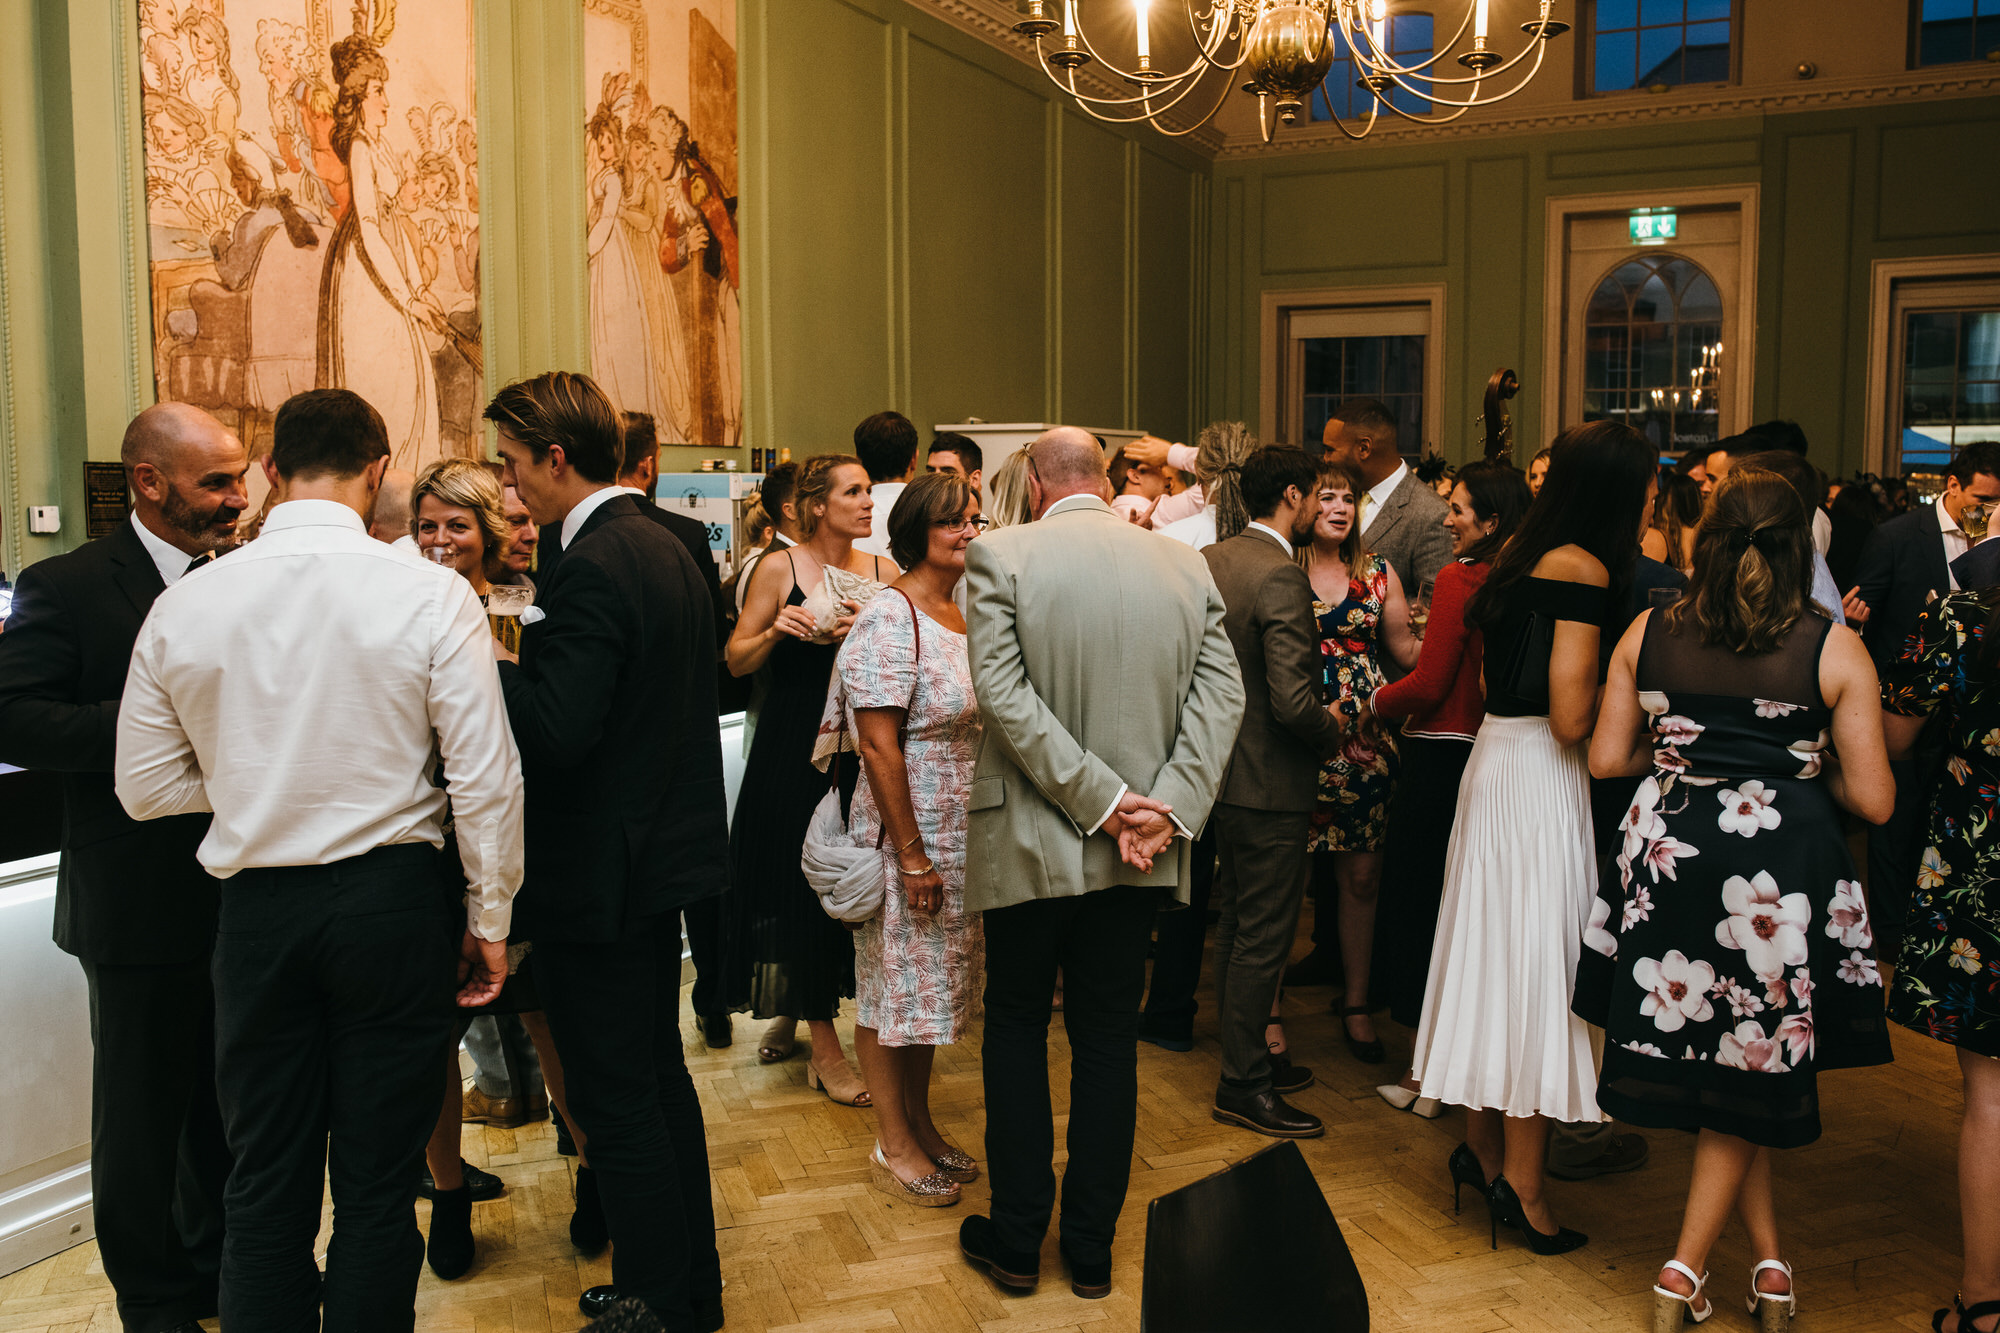 Assembly rooms bath wedding venue simon biffen photography 13